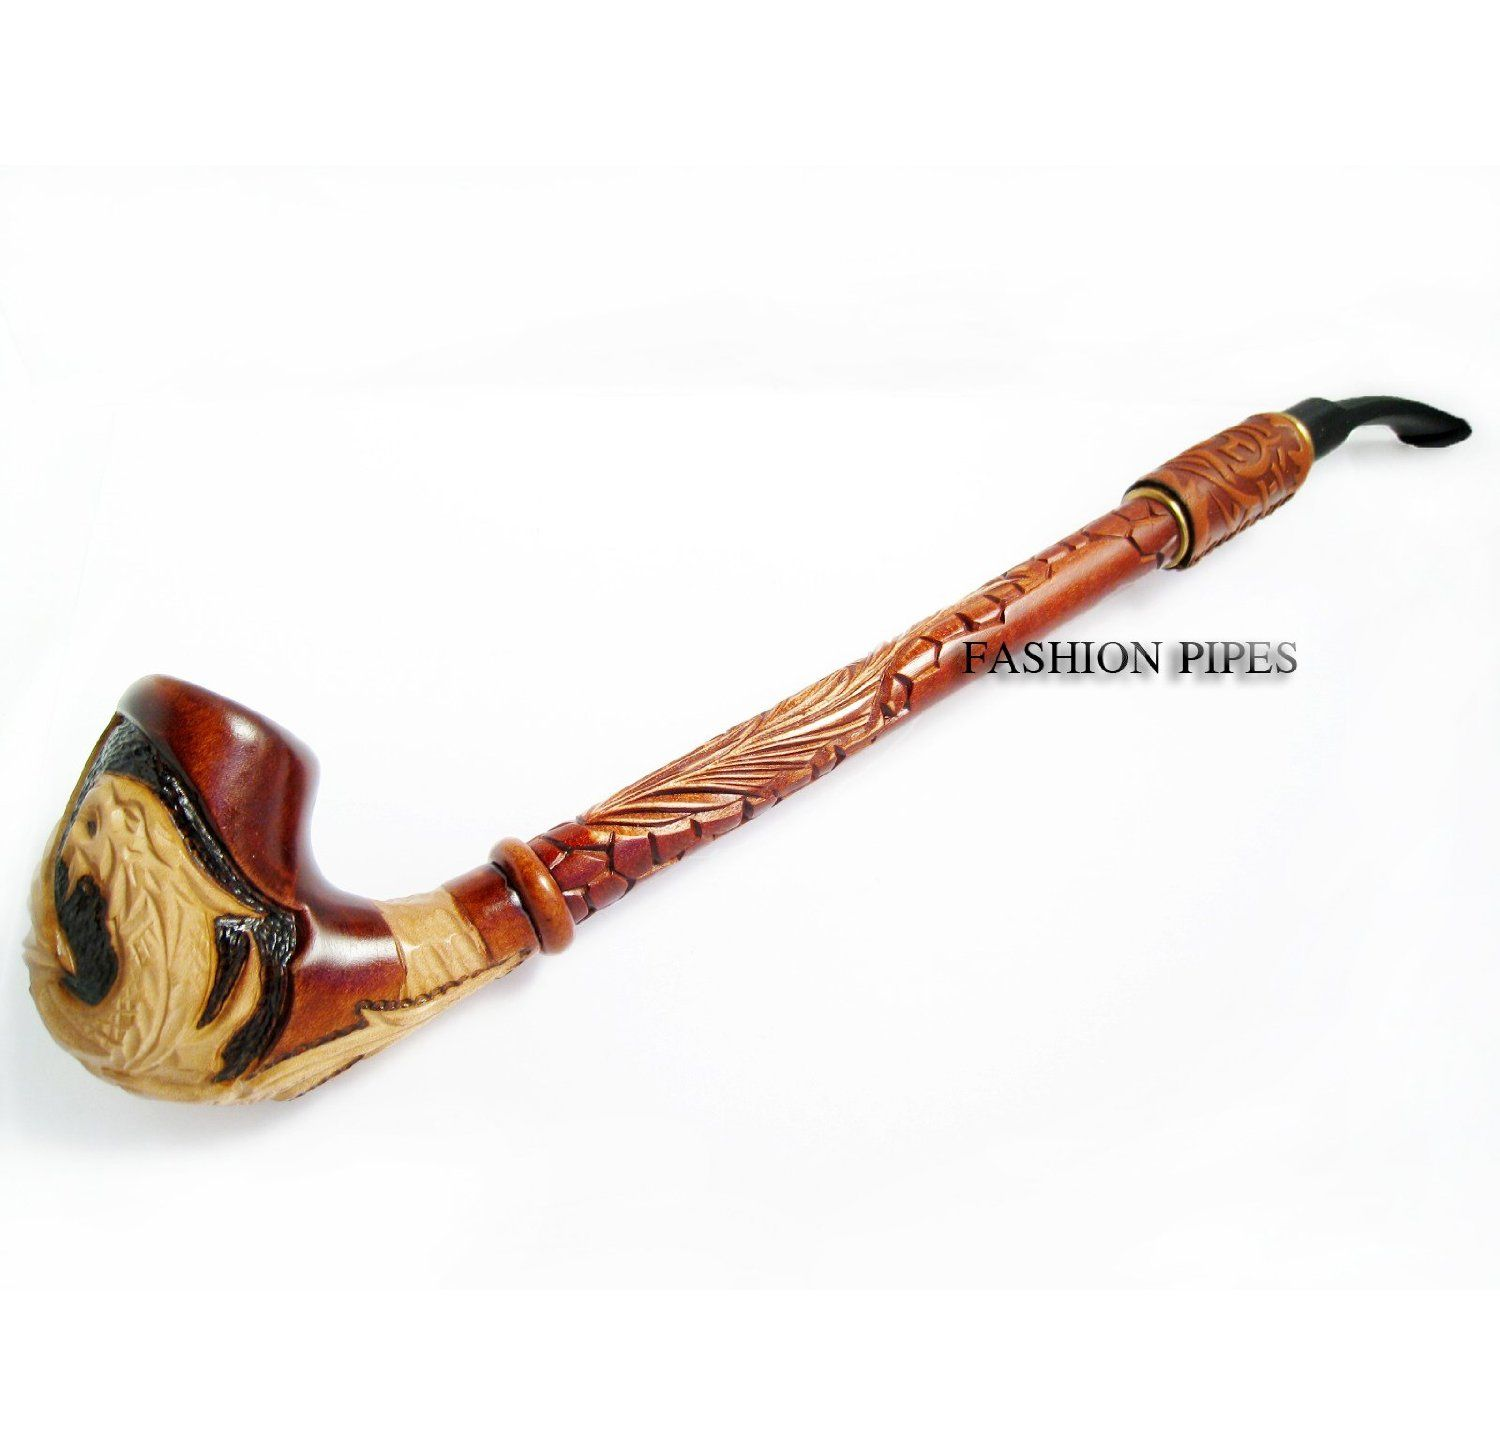 Amazon.com: Exclusive Pipe Dragon Decorated with Leather. Churchwarden 13''  Wooden Pipe Handcrafted. Exclusive Designed for Pipe Smokers: Health &  Personal ...